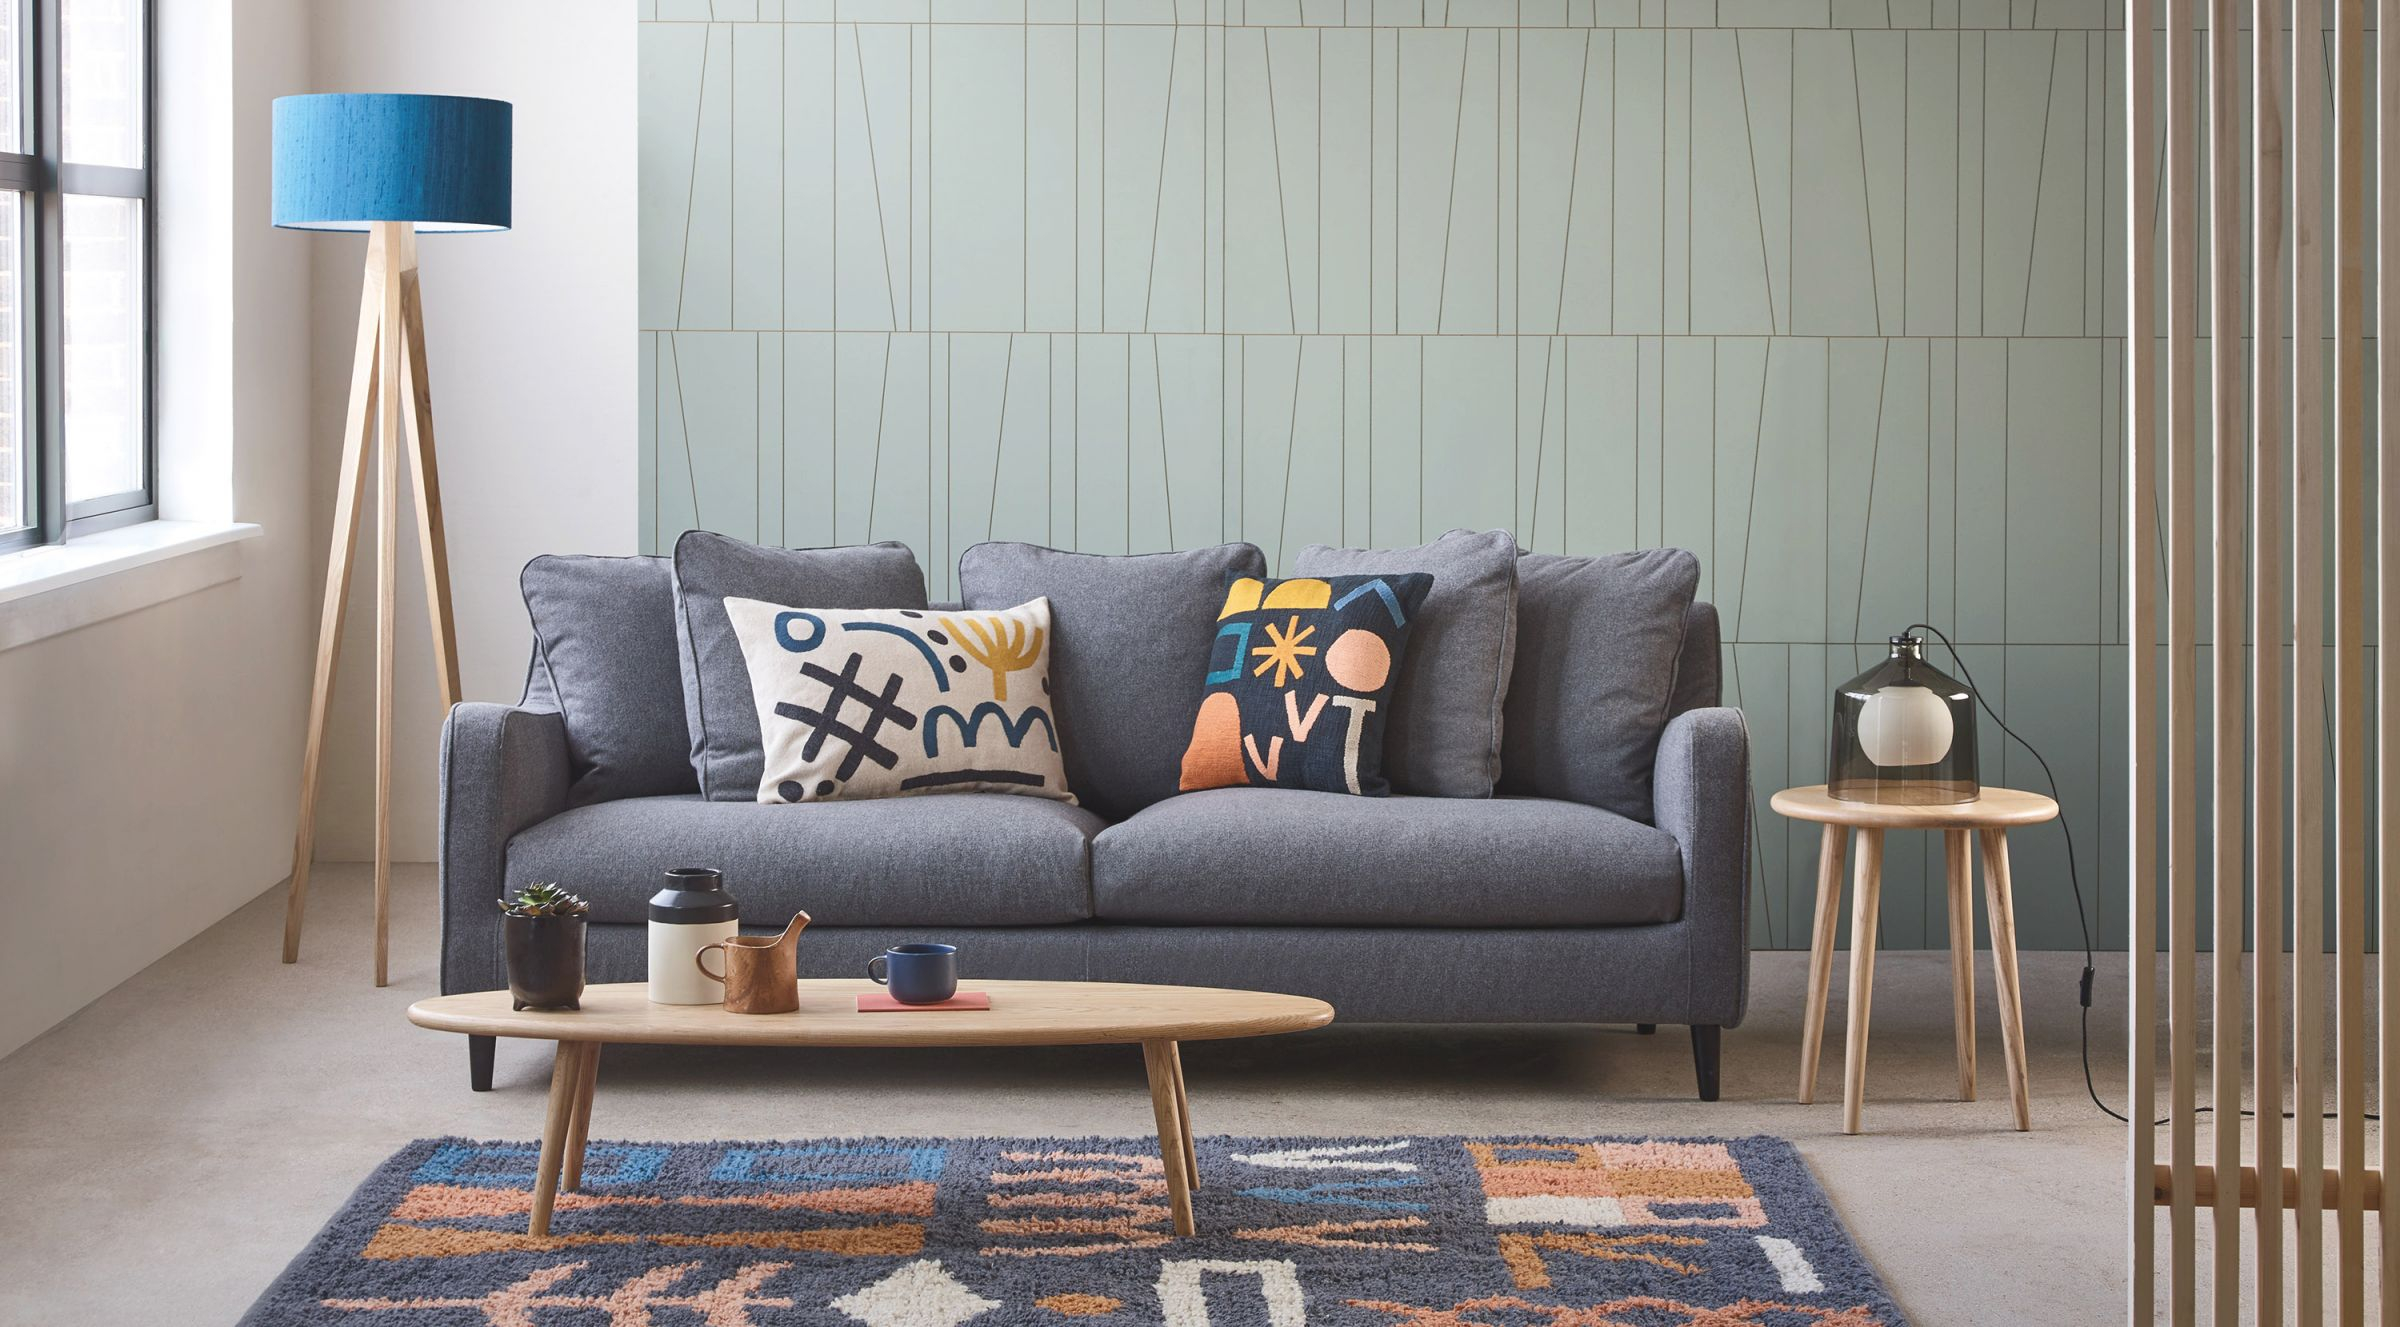 Small Living Room Ideas: 6 Ways To Maximise Lounge Space regarding Ideas Of Decorating Small Living Room